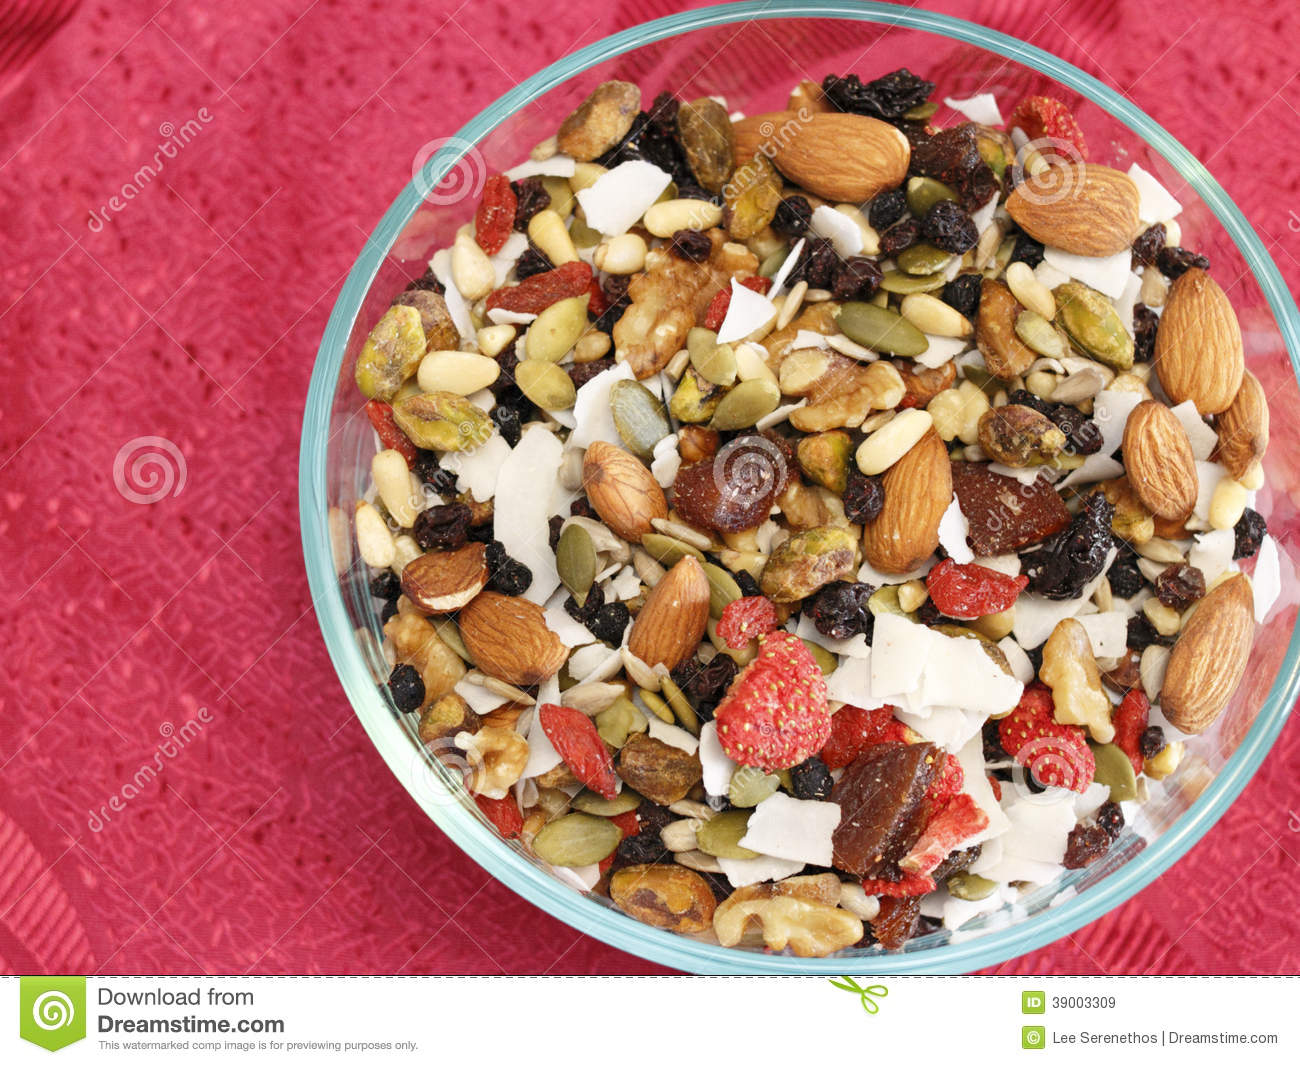 super fruit and nut mix stock image image of edible 39003309